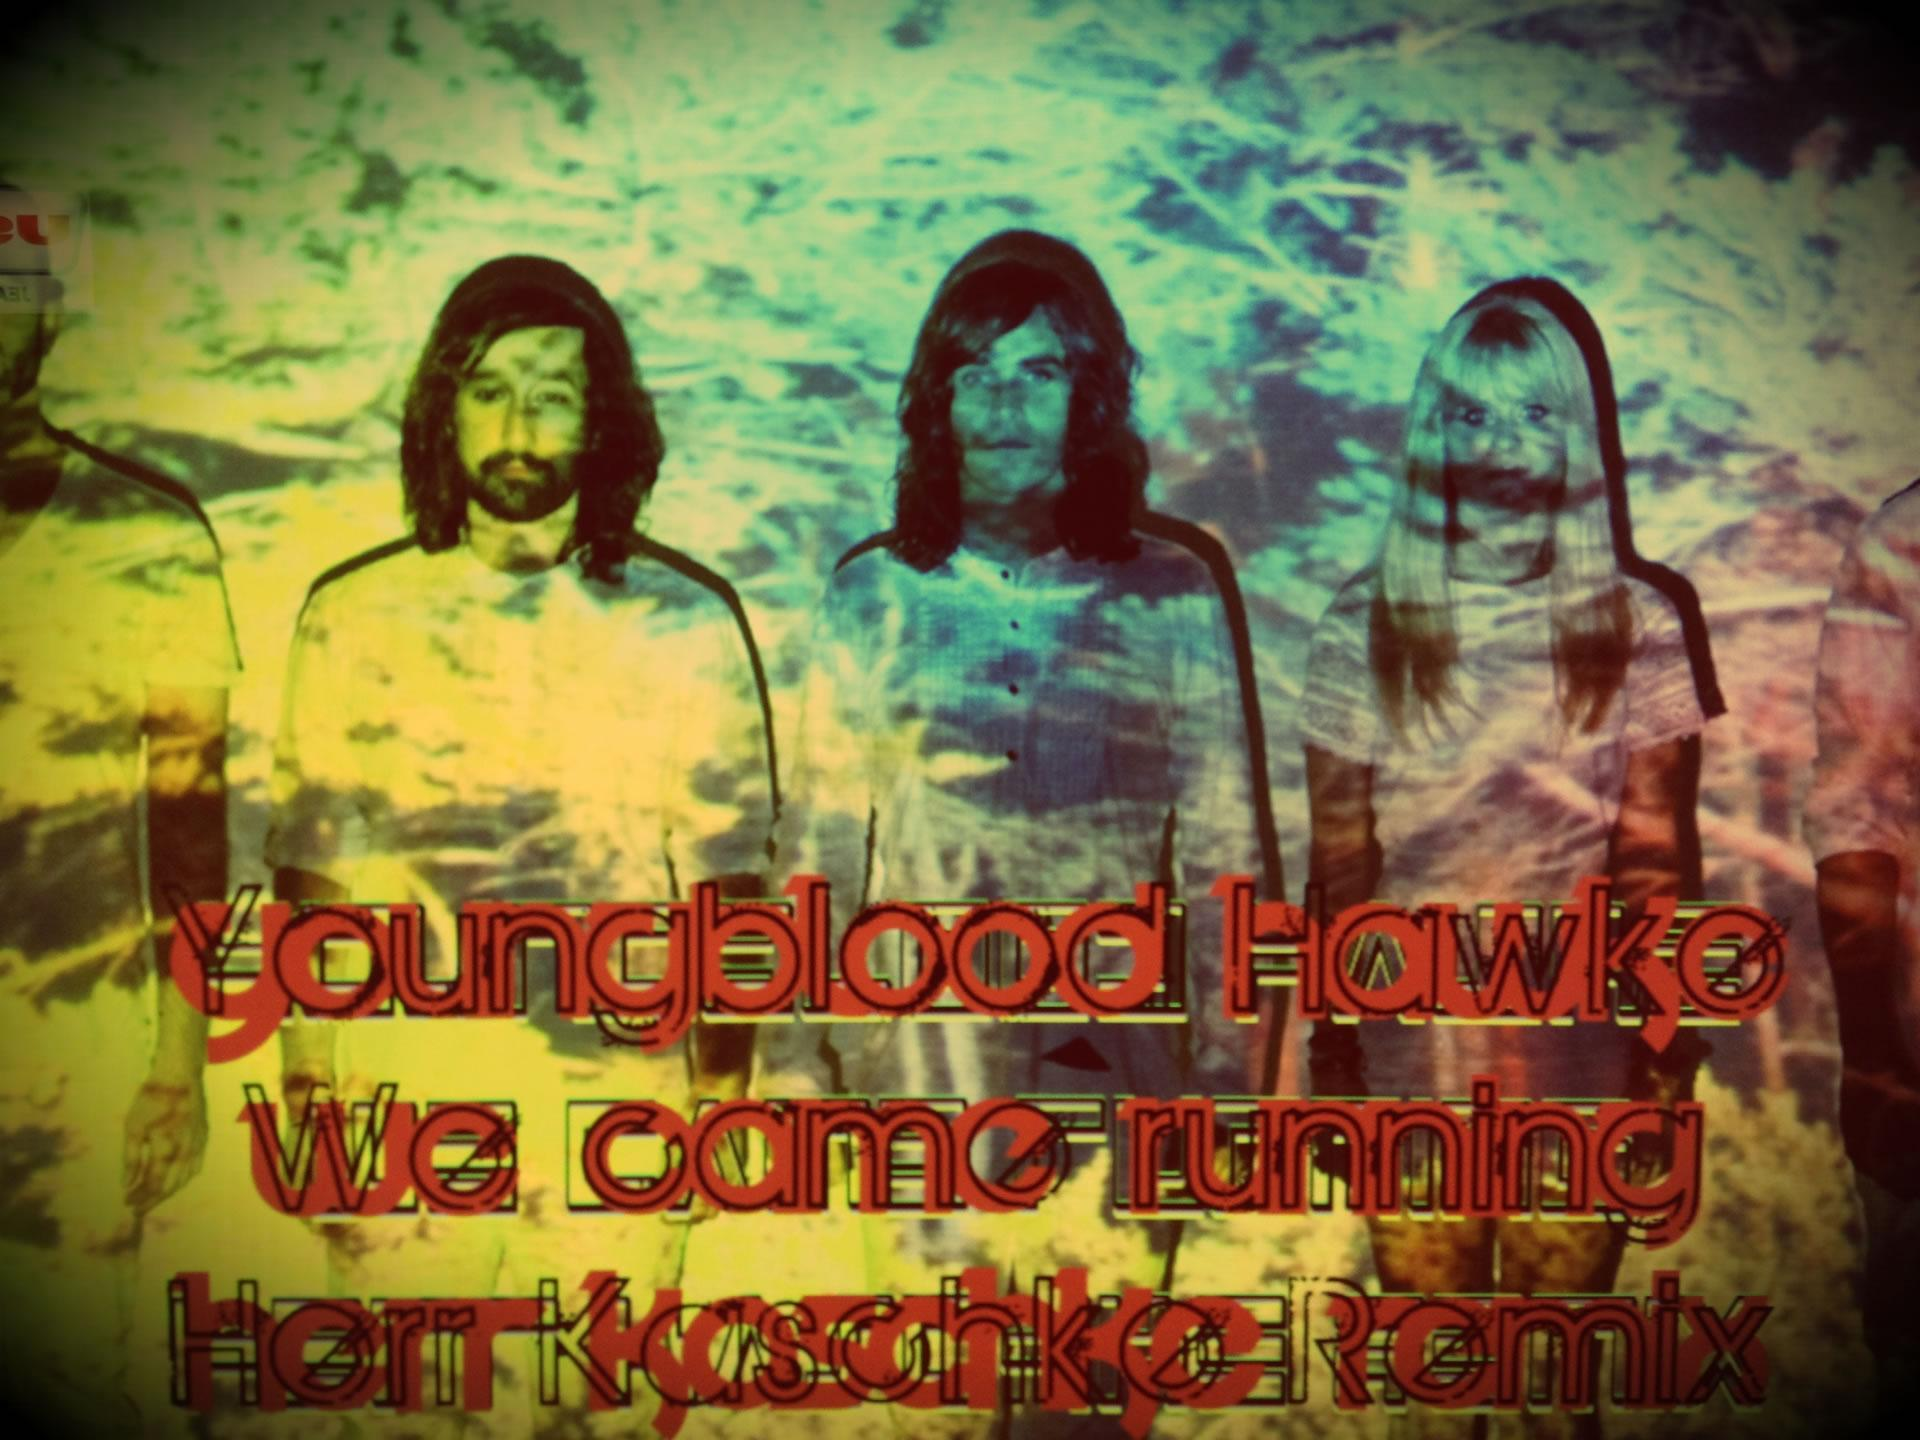 Youngblood Hawke – We come running (Herr Kaschke Remix)